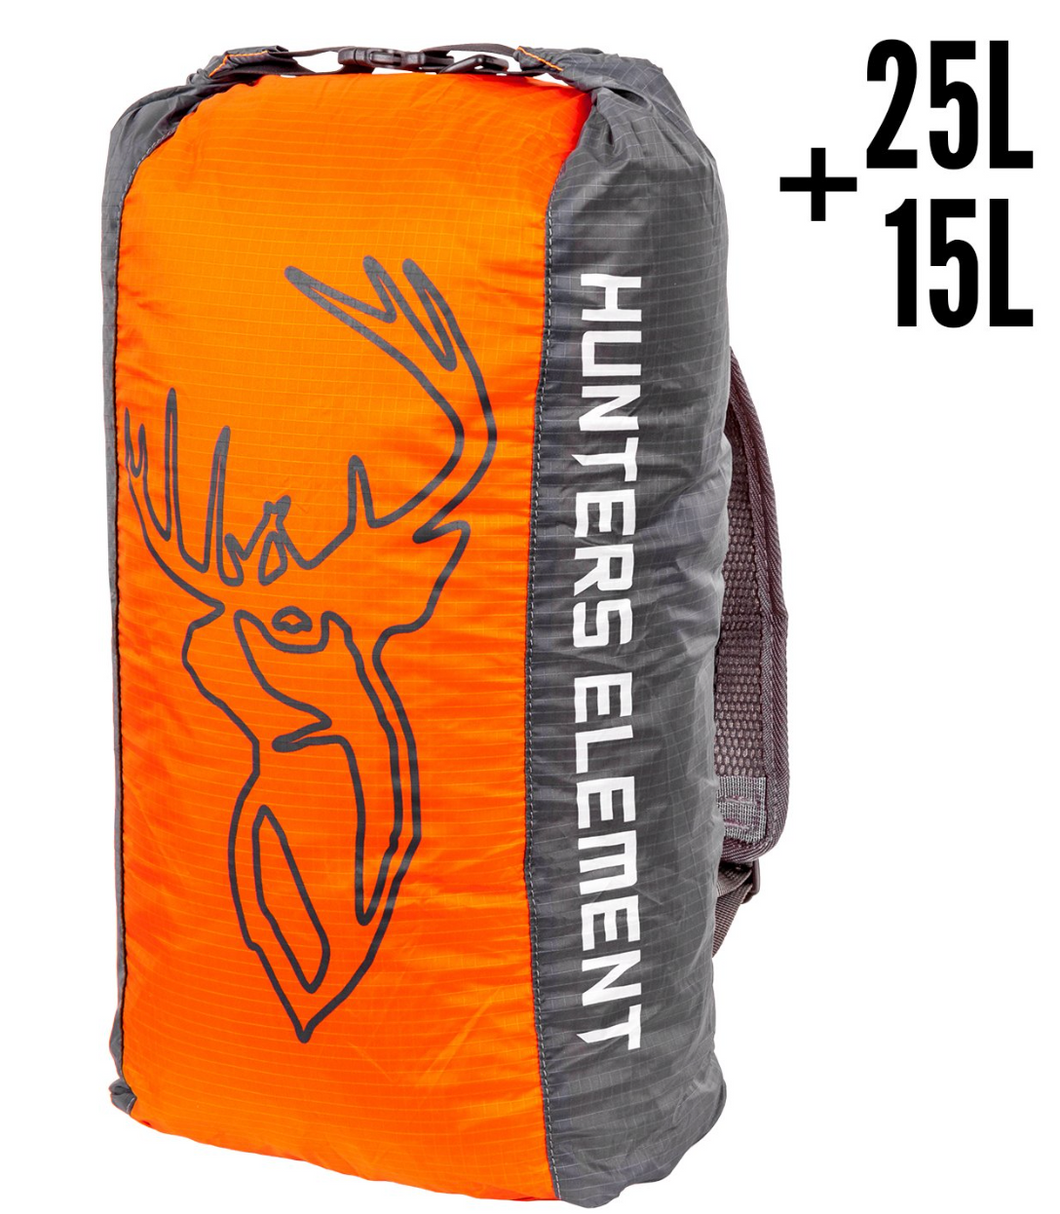 HUNTERS ELEMENT BLUFF PACKABLE PACK 25L -  - Mansfield Hunting & Fishing - Products to prepare for Corona Virus